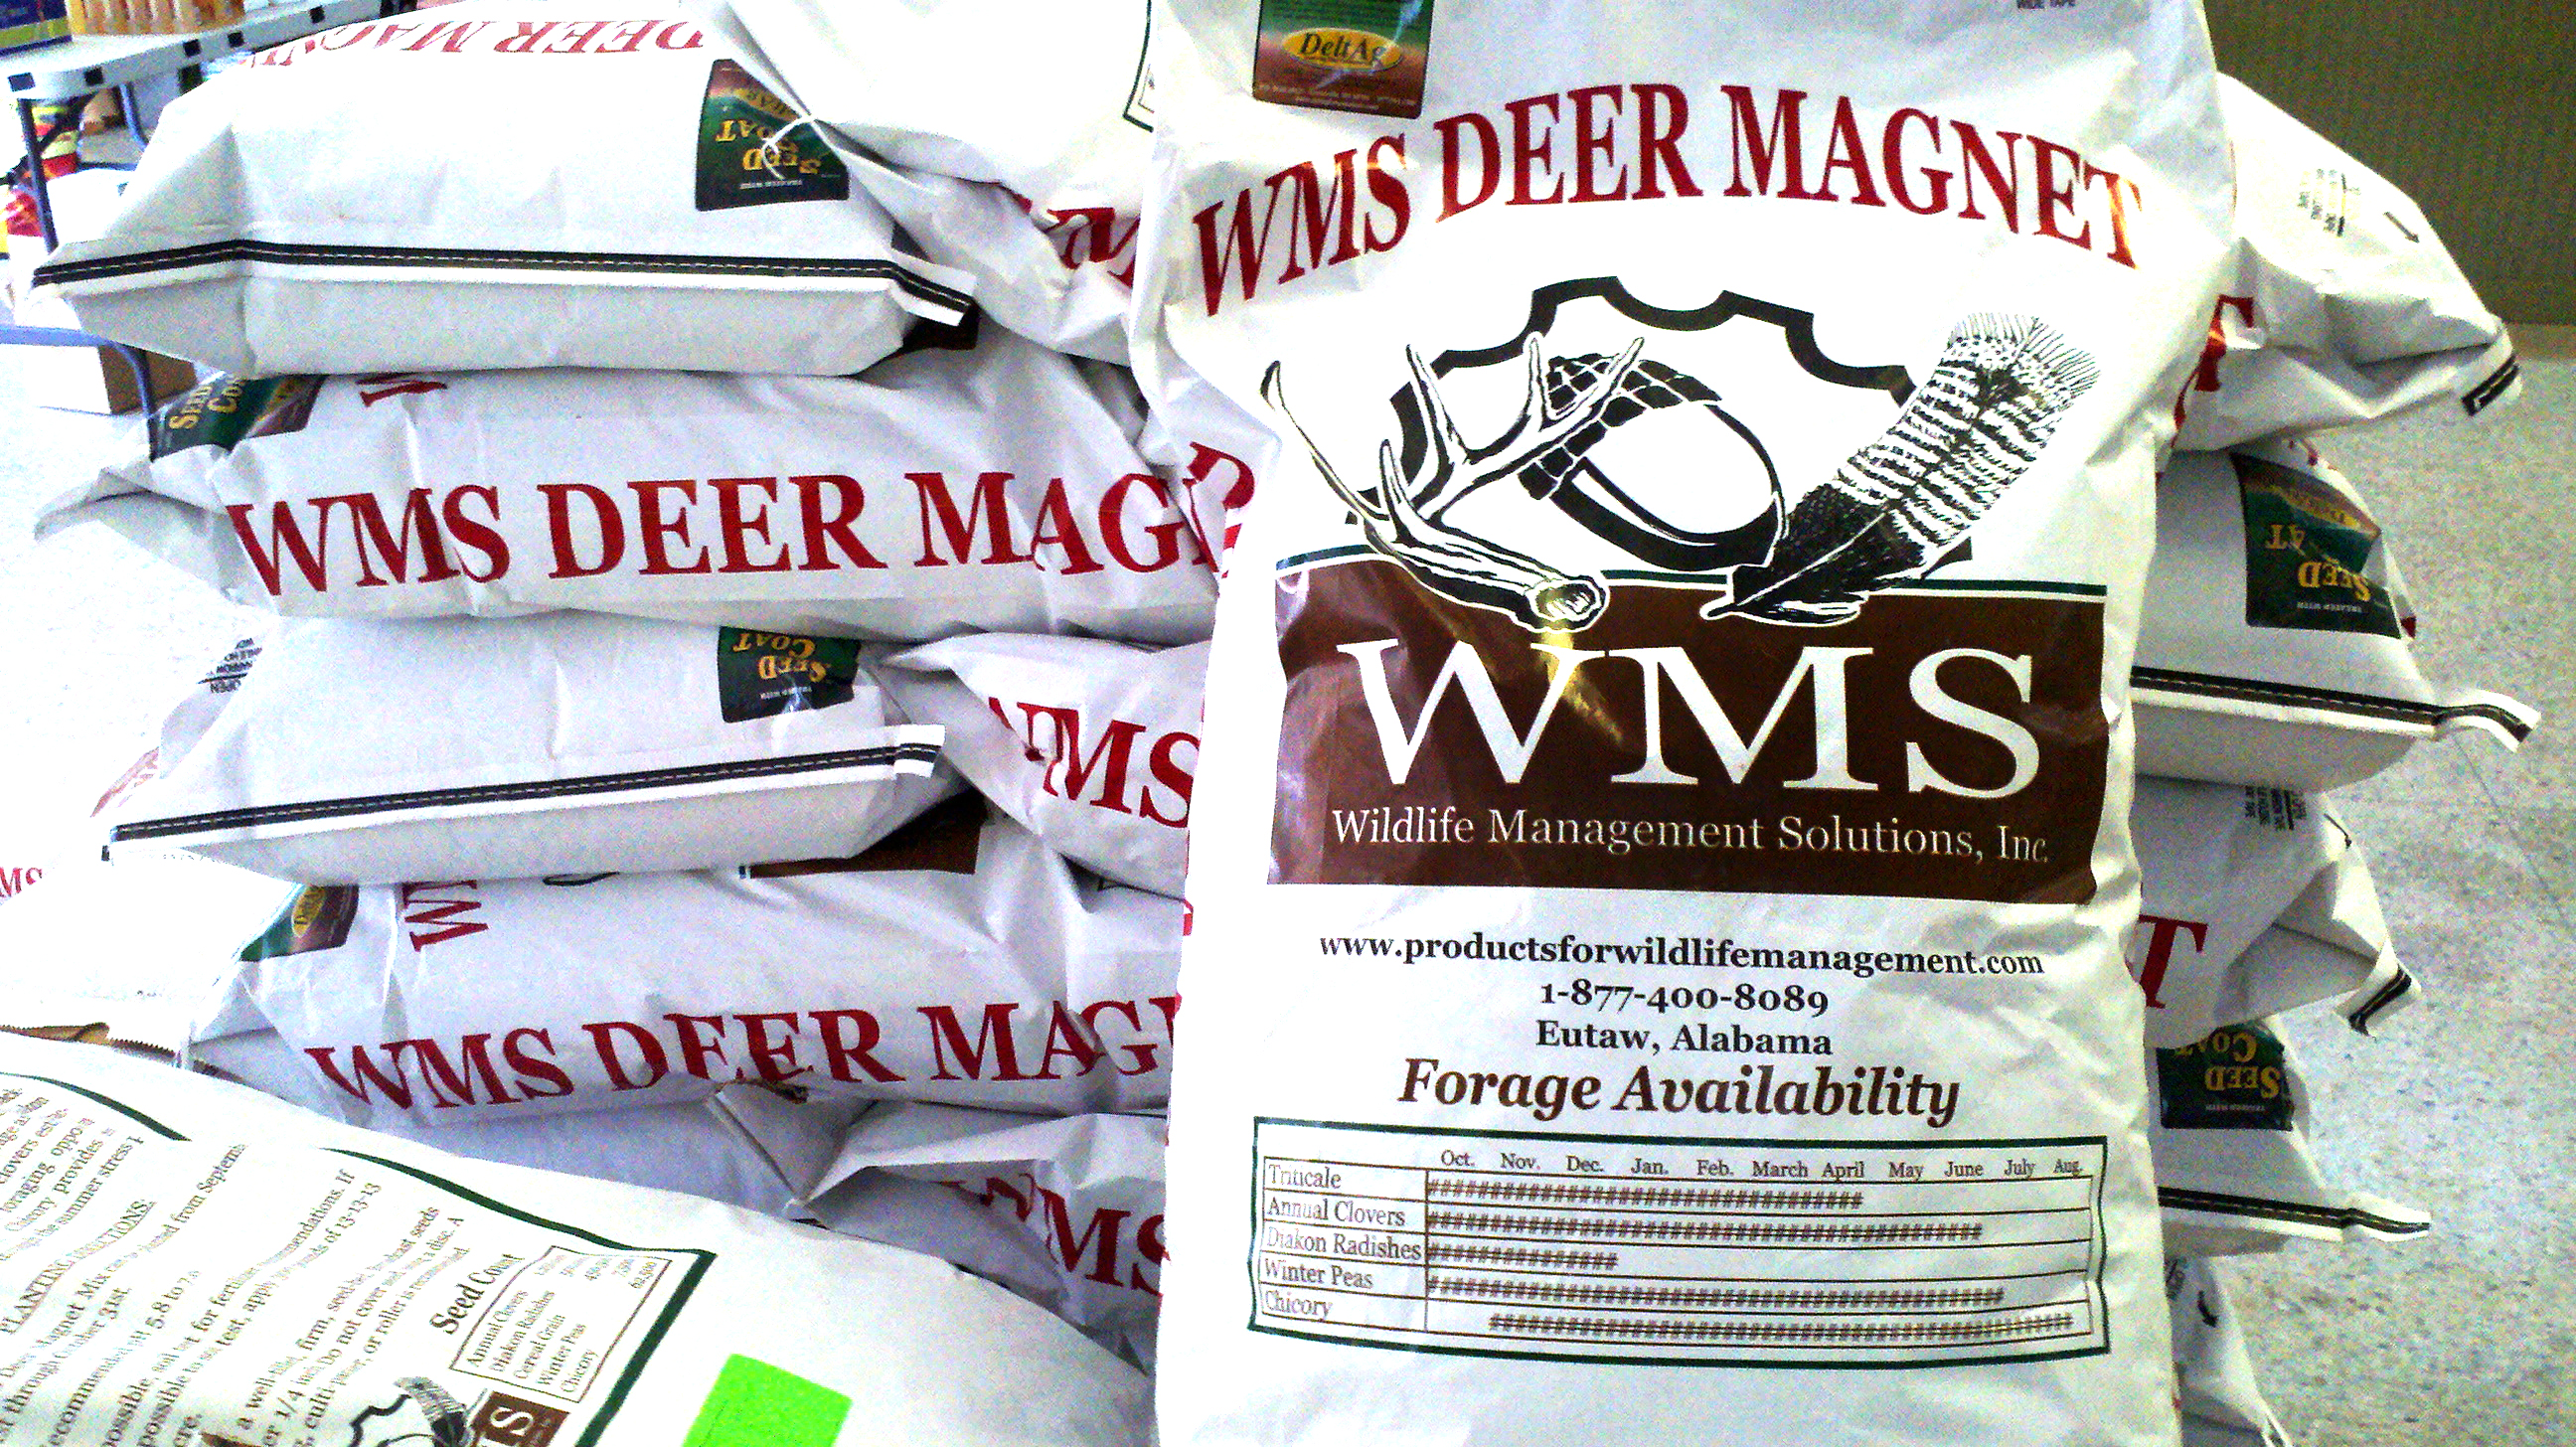 food plots for deer in the woods Deer Magnet